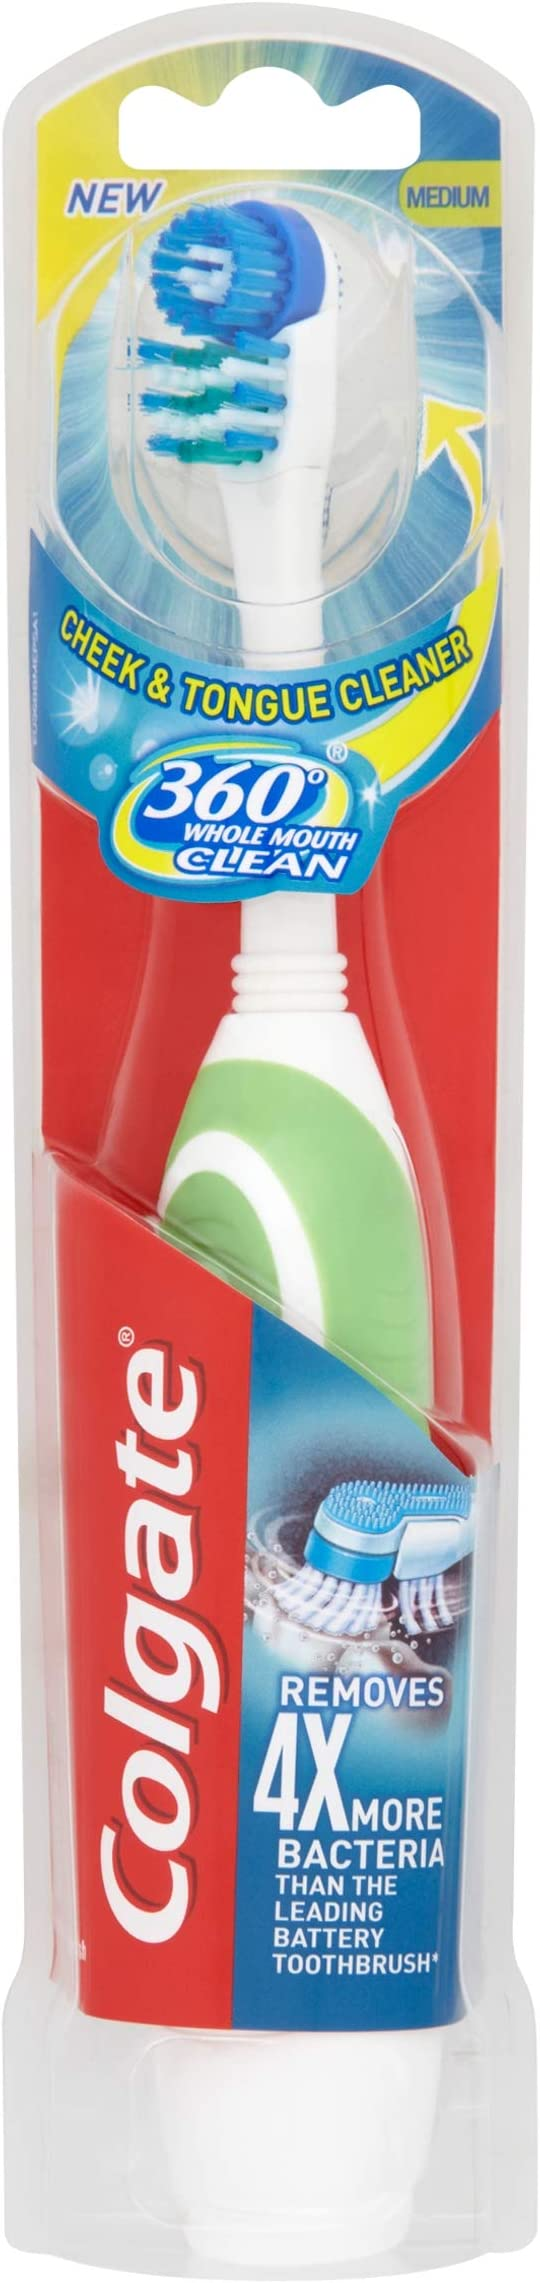 Colgate 360 Whole Mouth Clean Battery Powered Toothbrush (assorted Colors -Blue / Green / Pink / Purple),Colgate Palmolive Ltd,270075